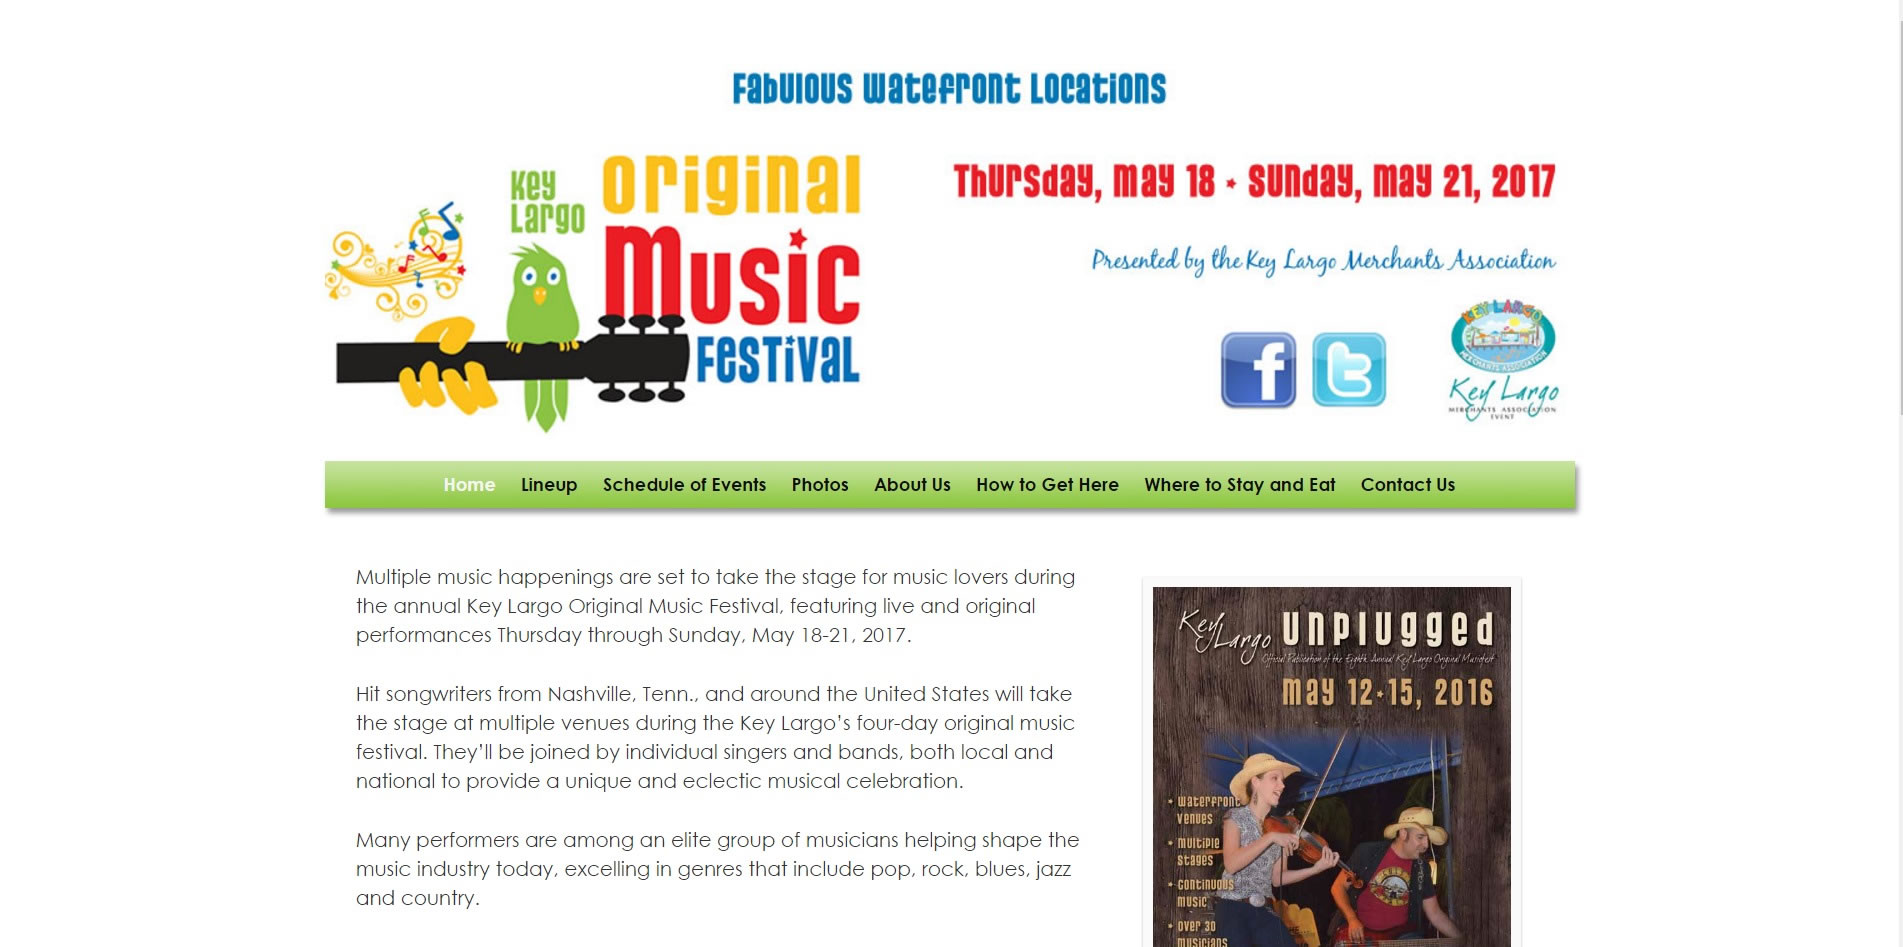 Key Largo Original Music Festival